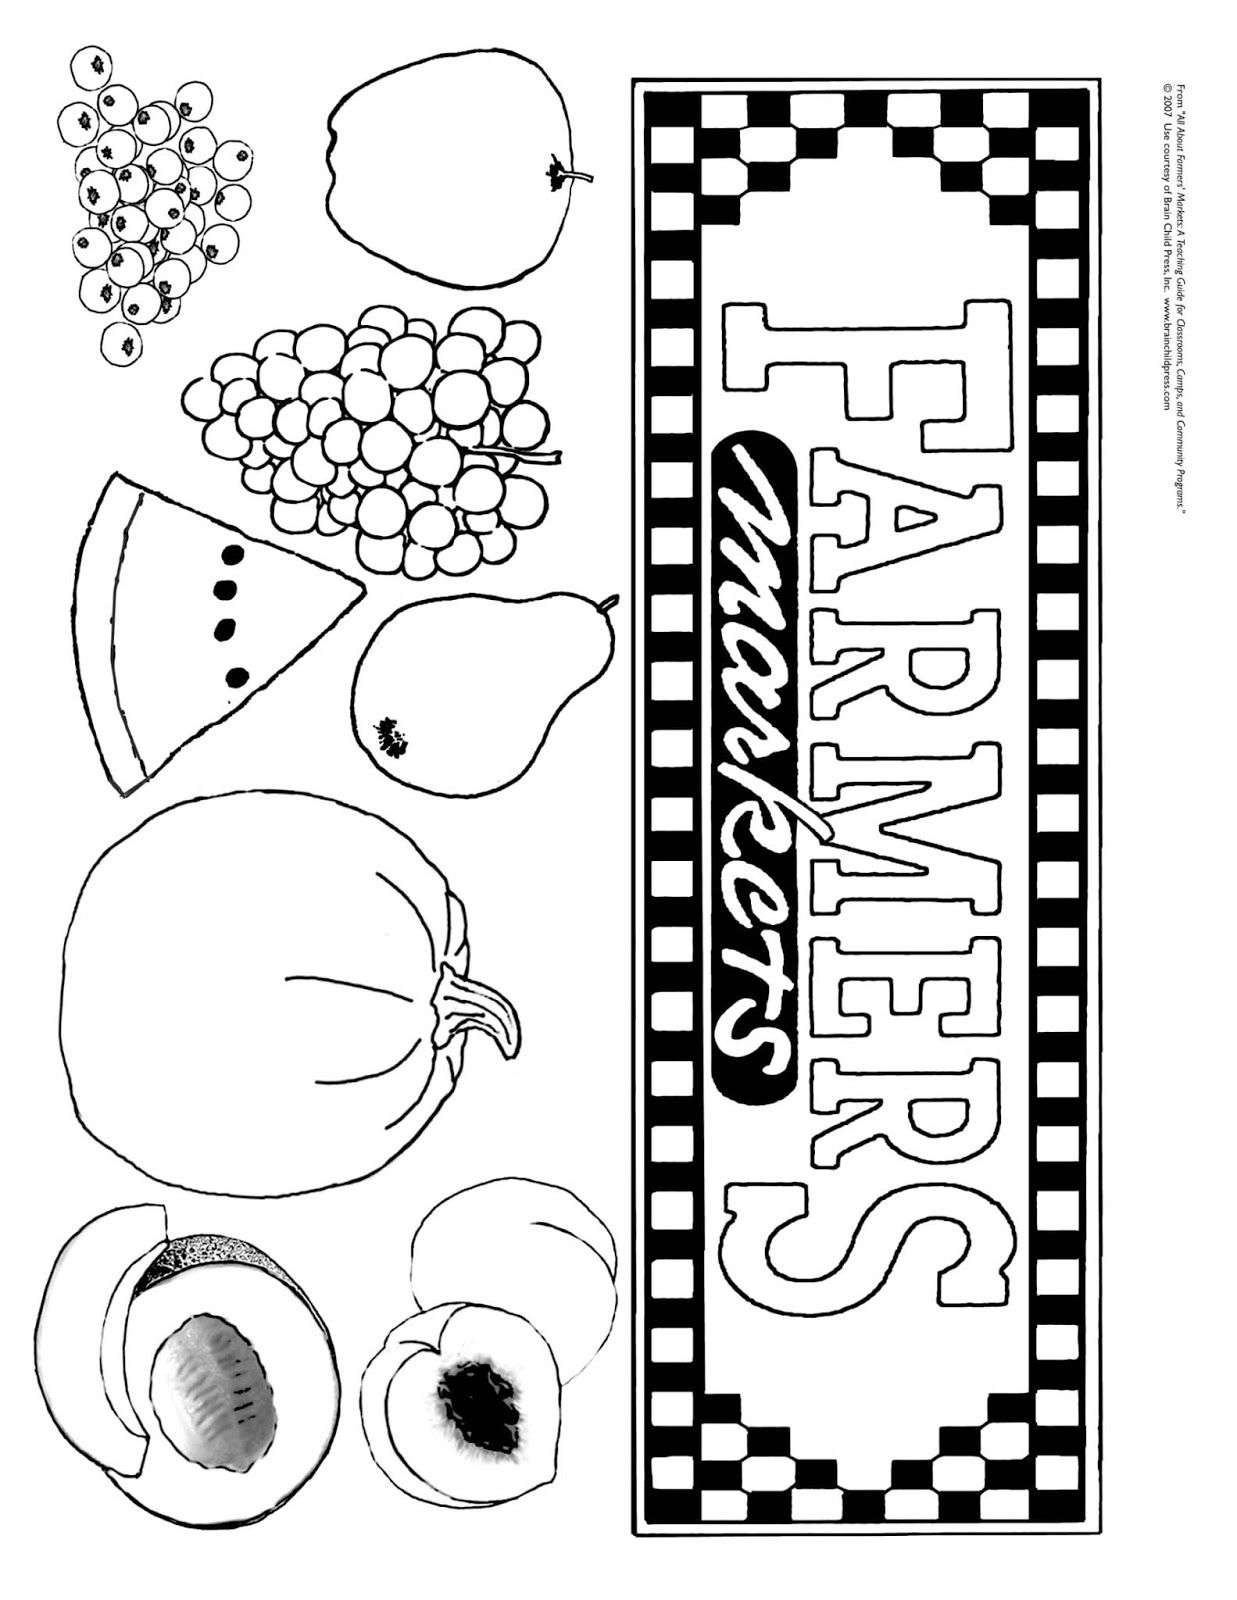 Farmer Market Coloring Sheet Coloringsheet Worksheets